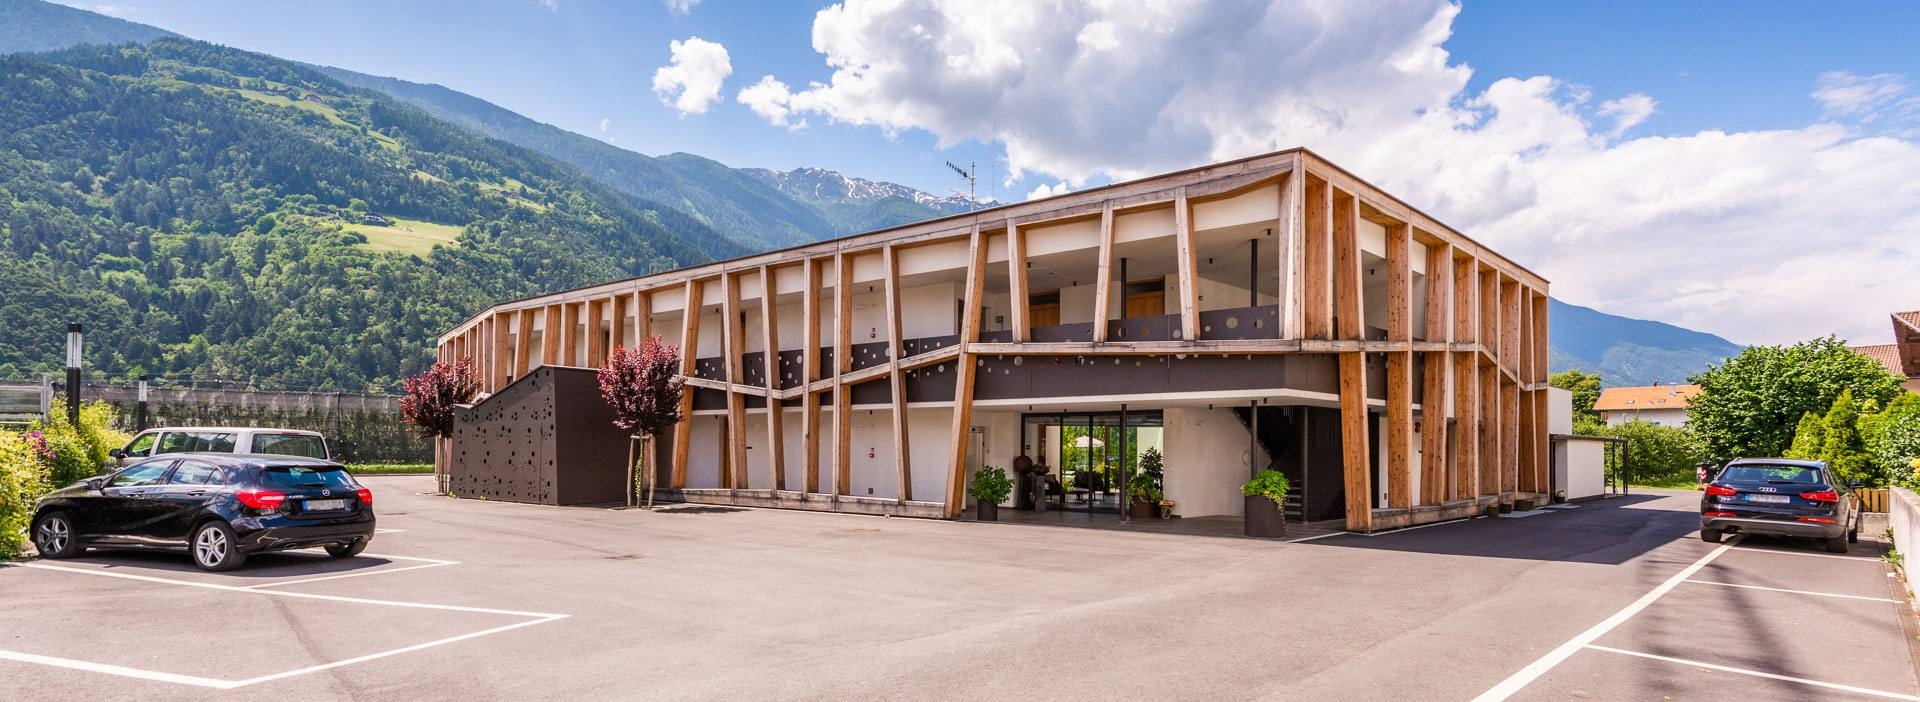 Residence & Sportlodges Claudia